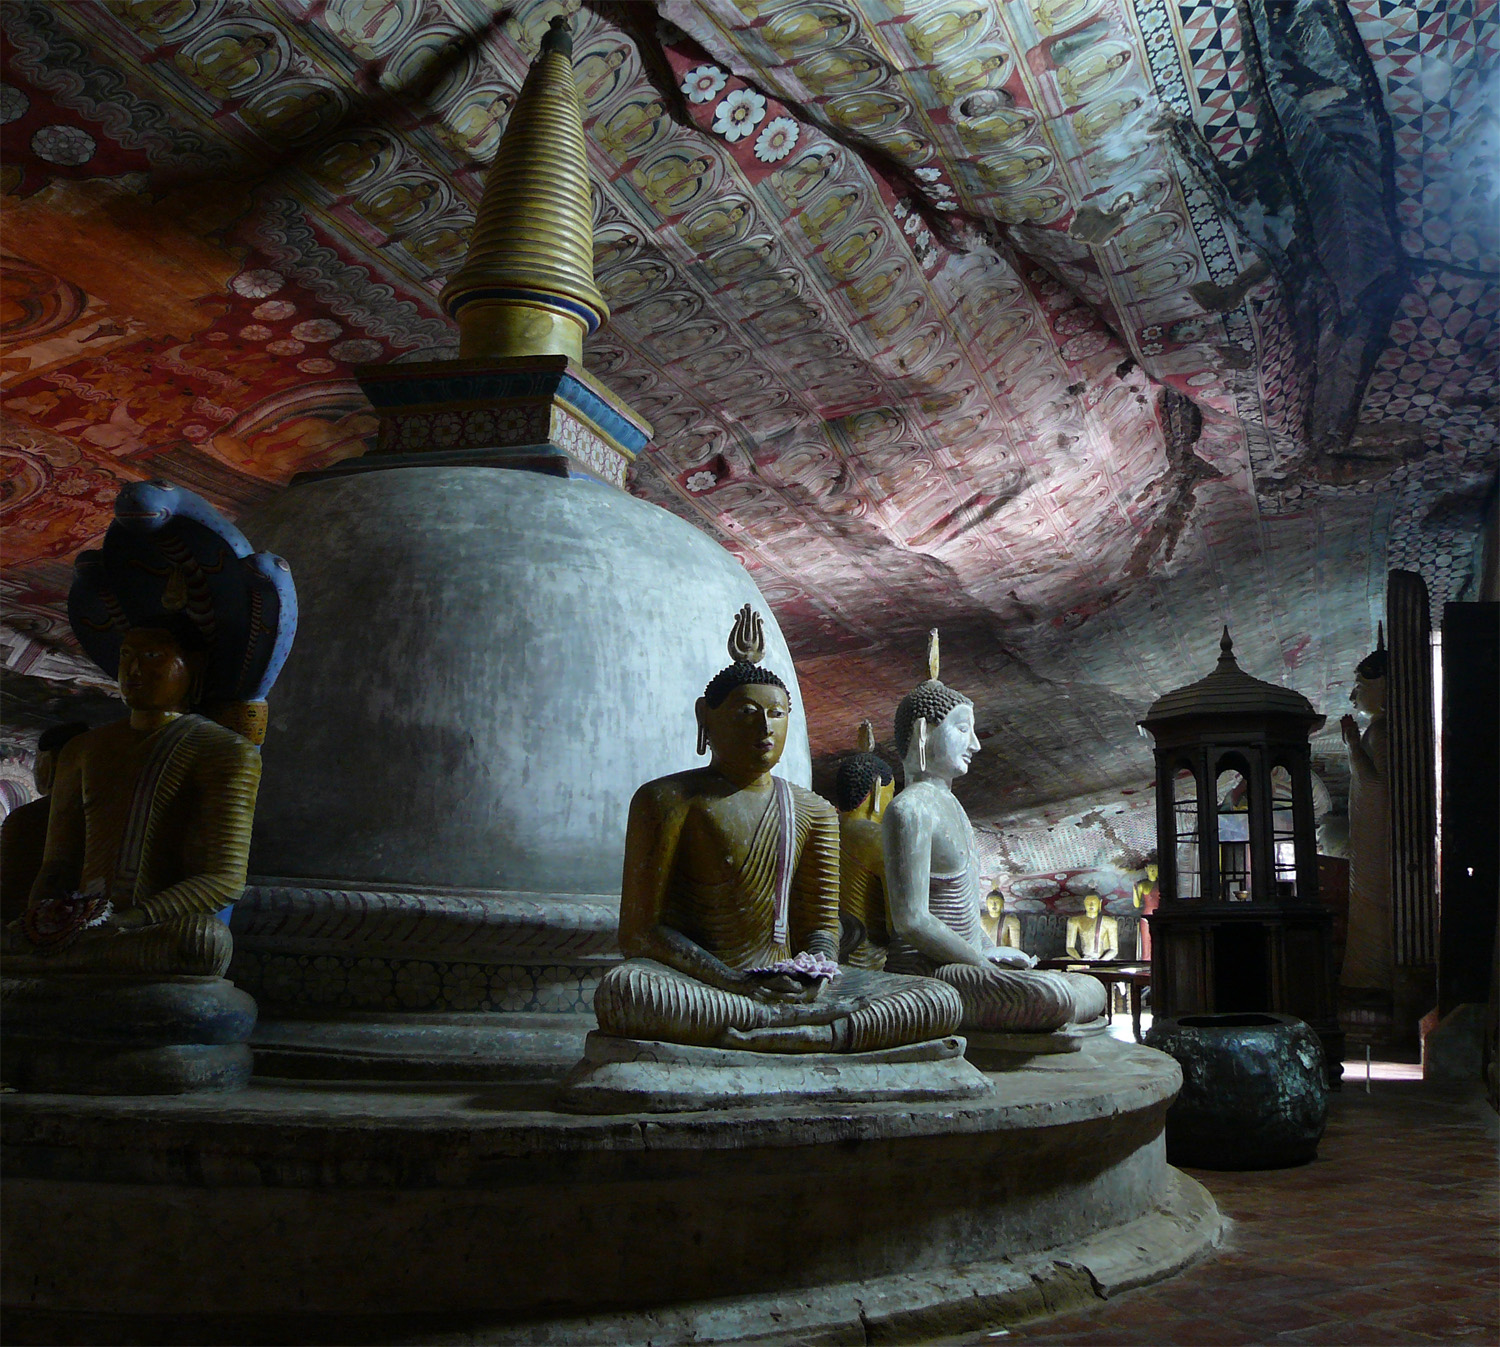 day5 - Dambulla cave temple5a